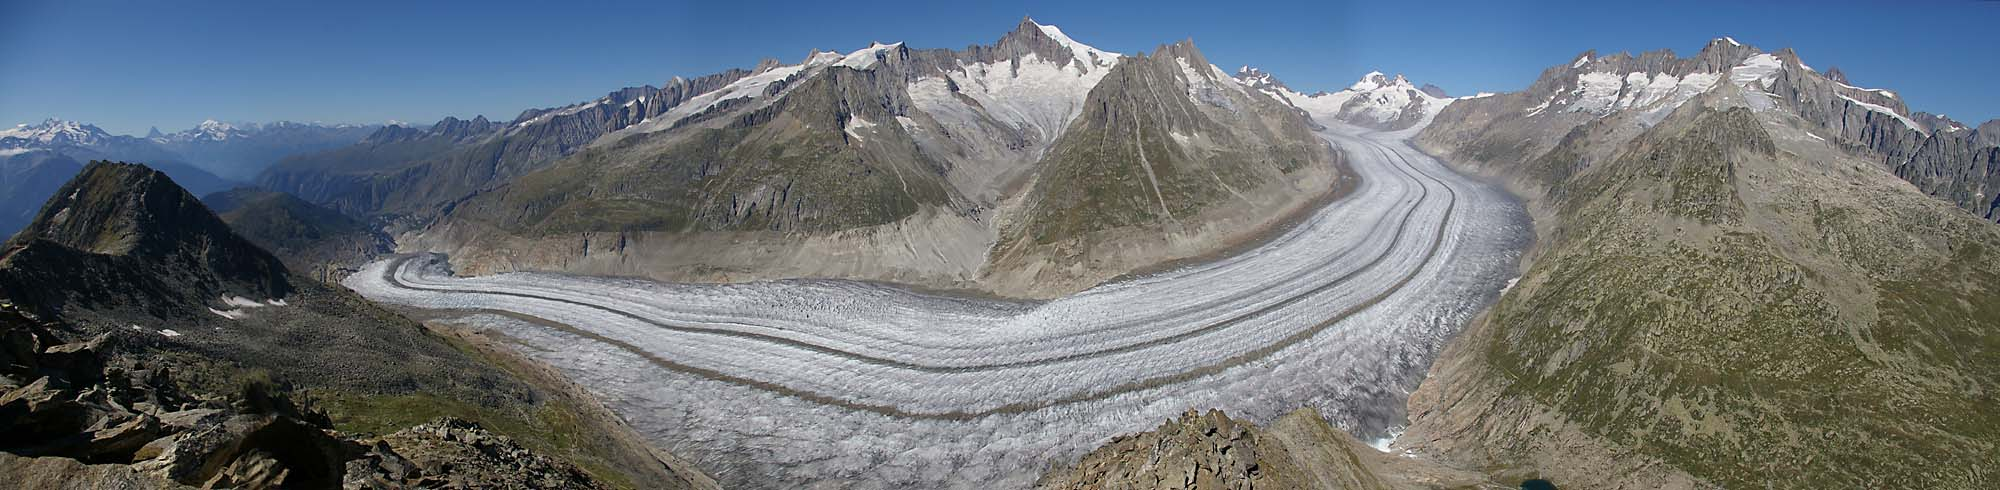 Panorama of the Aletsch Glacier